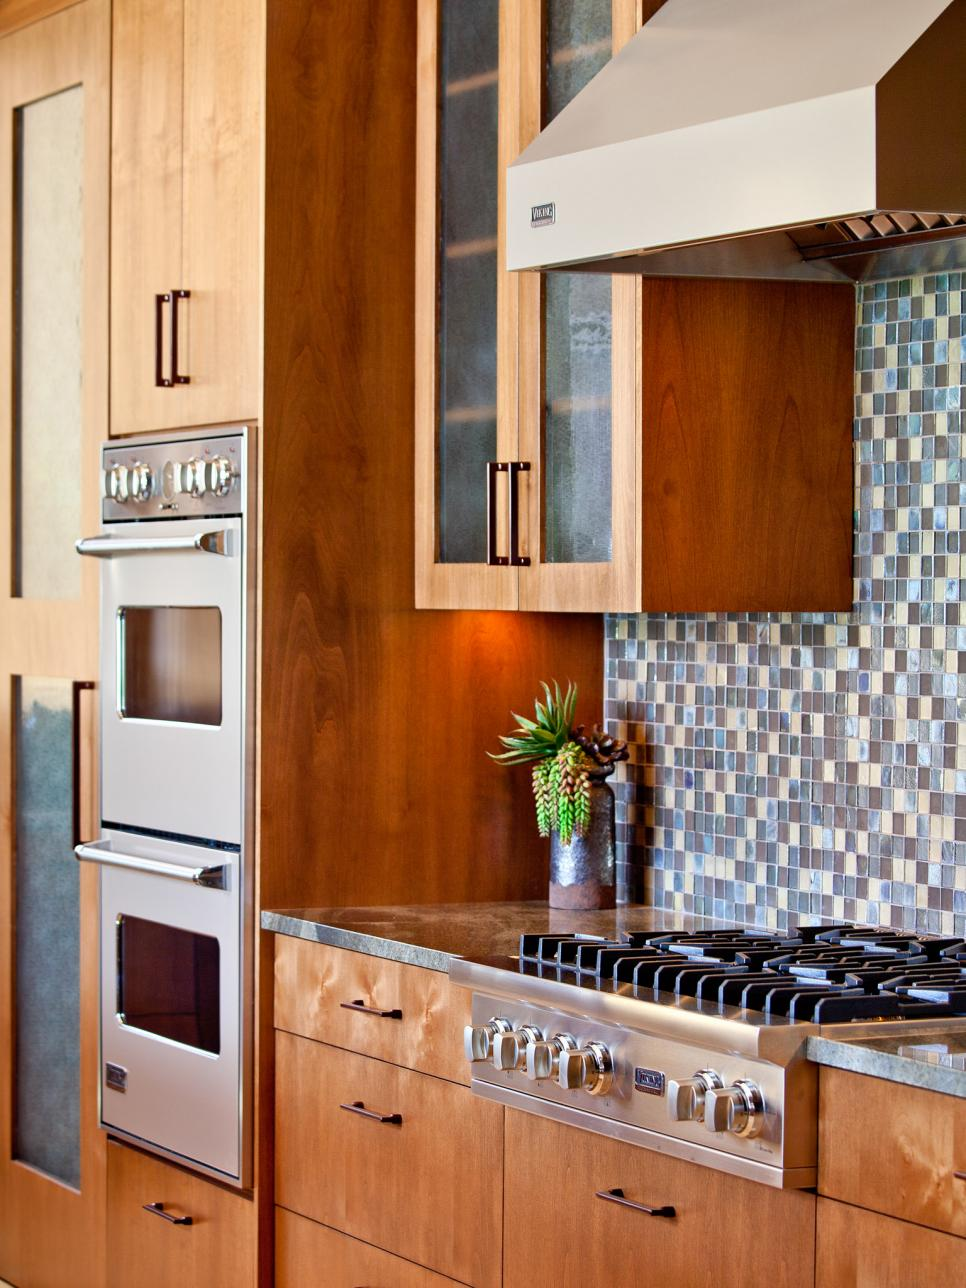 Kitchen With Wood Cabinetry, Mosaic Tile Backsplash and Built-In Appliances